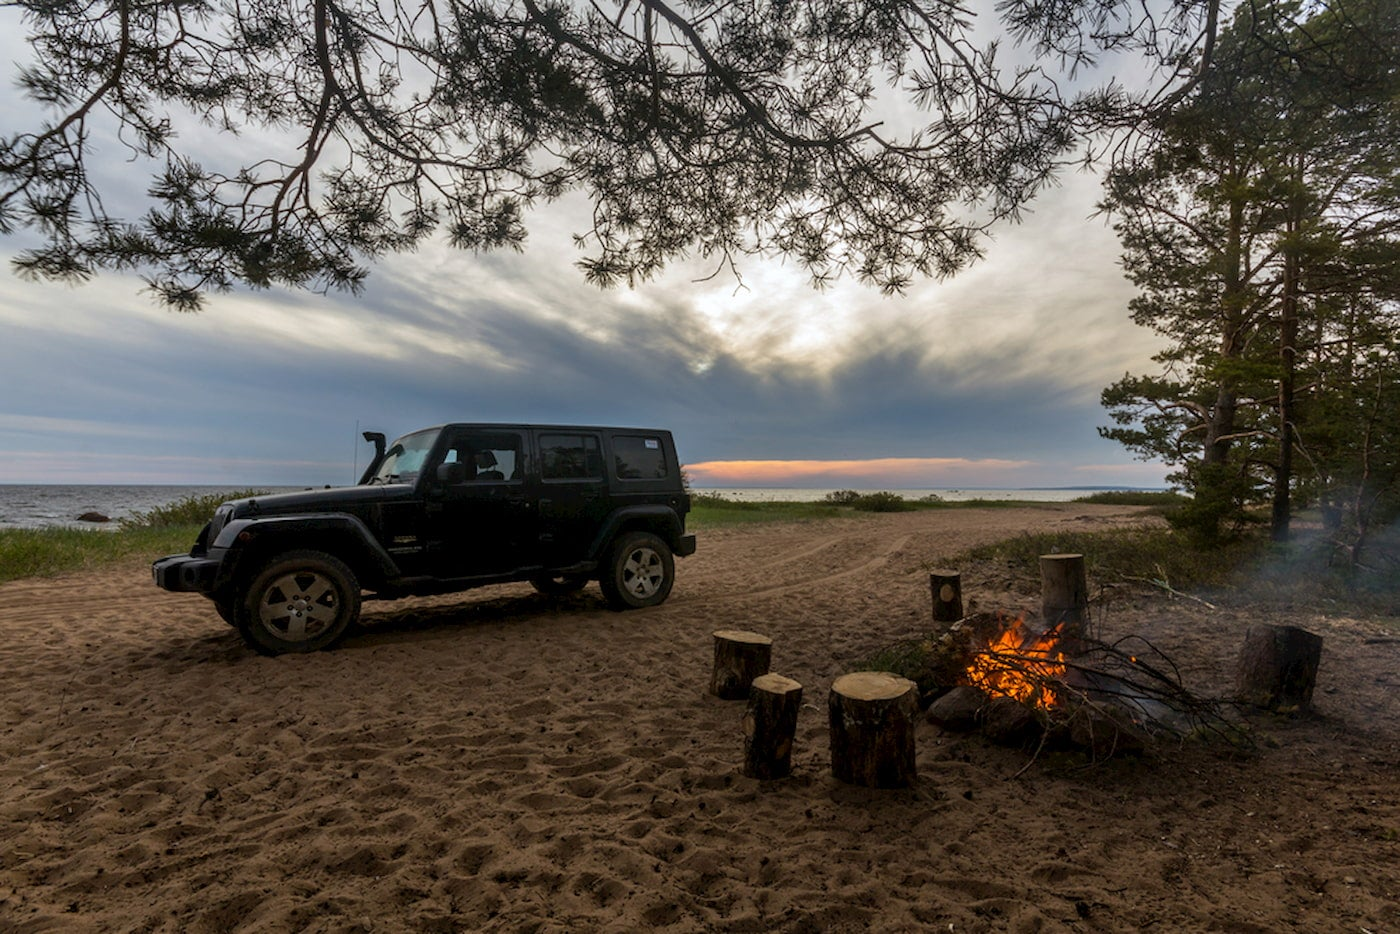 Jeep wrangler parked on beach beside fire.